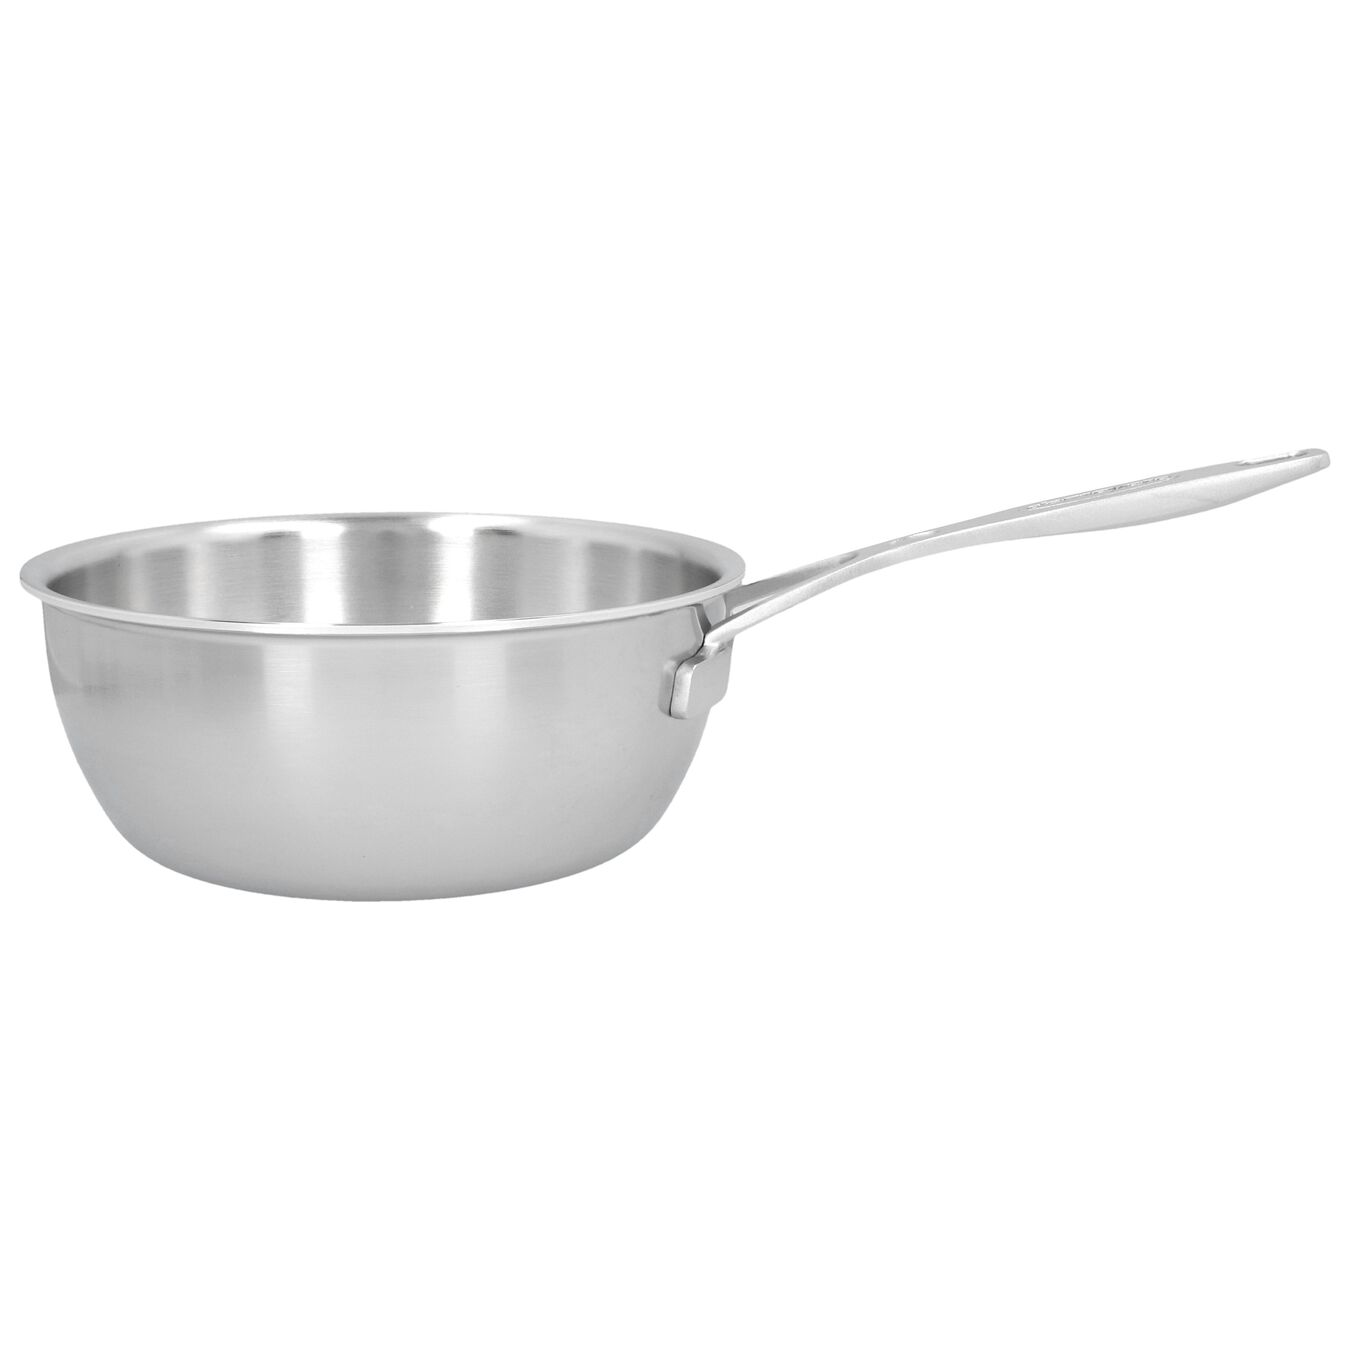 Sauteuse conique 20 cm / 2 l,,large 1